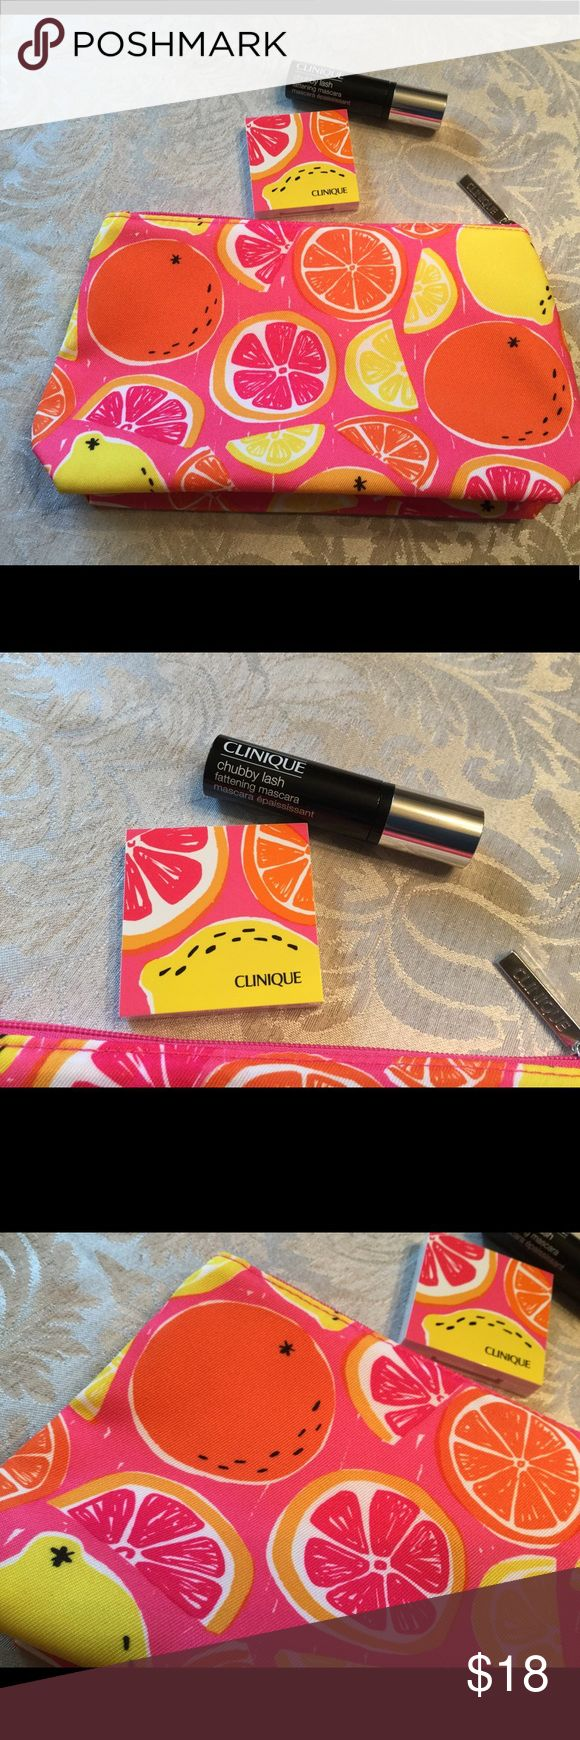 """🆕 Clinique Make-up Bag & Eyeshadow Blush Mascara 💛 Clinique pretty make-up bag ! Plus eye shadow, colors """" morning java """" and """" ballet flats """" ! Also powder blush color """" Smoldering Plum """" ! Plus chubby lash, color """" Jumbo Jet """" ! All new, Never used ! NWOT Clinique Makeup"""